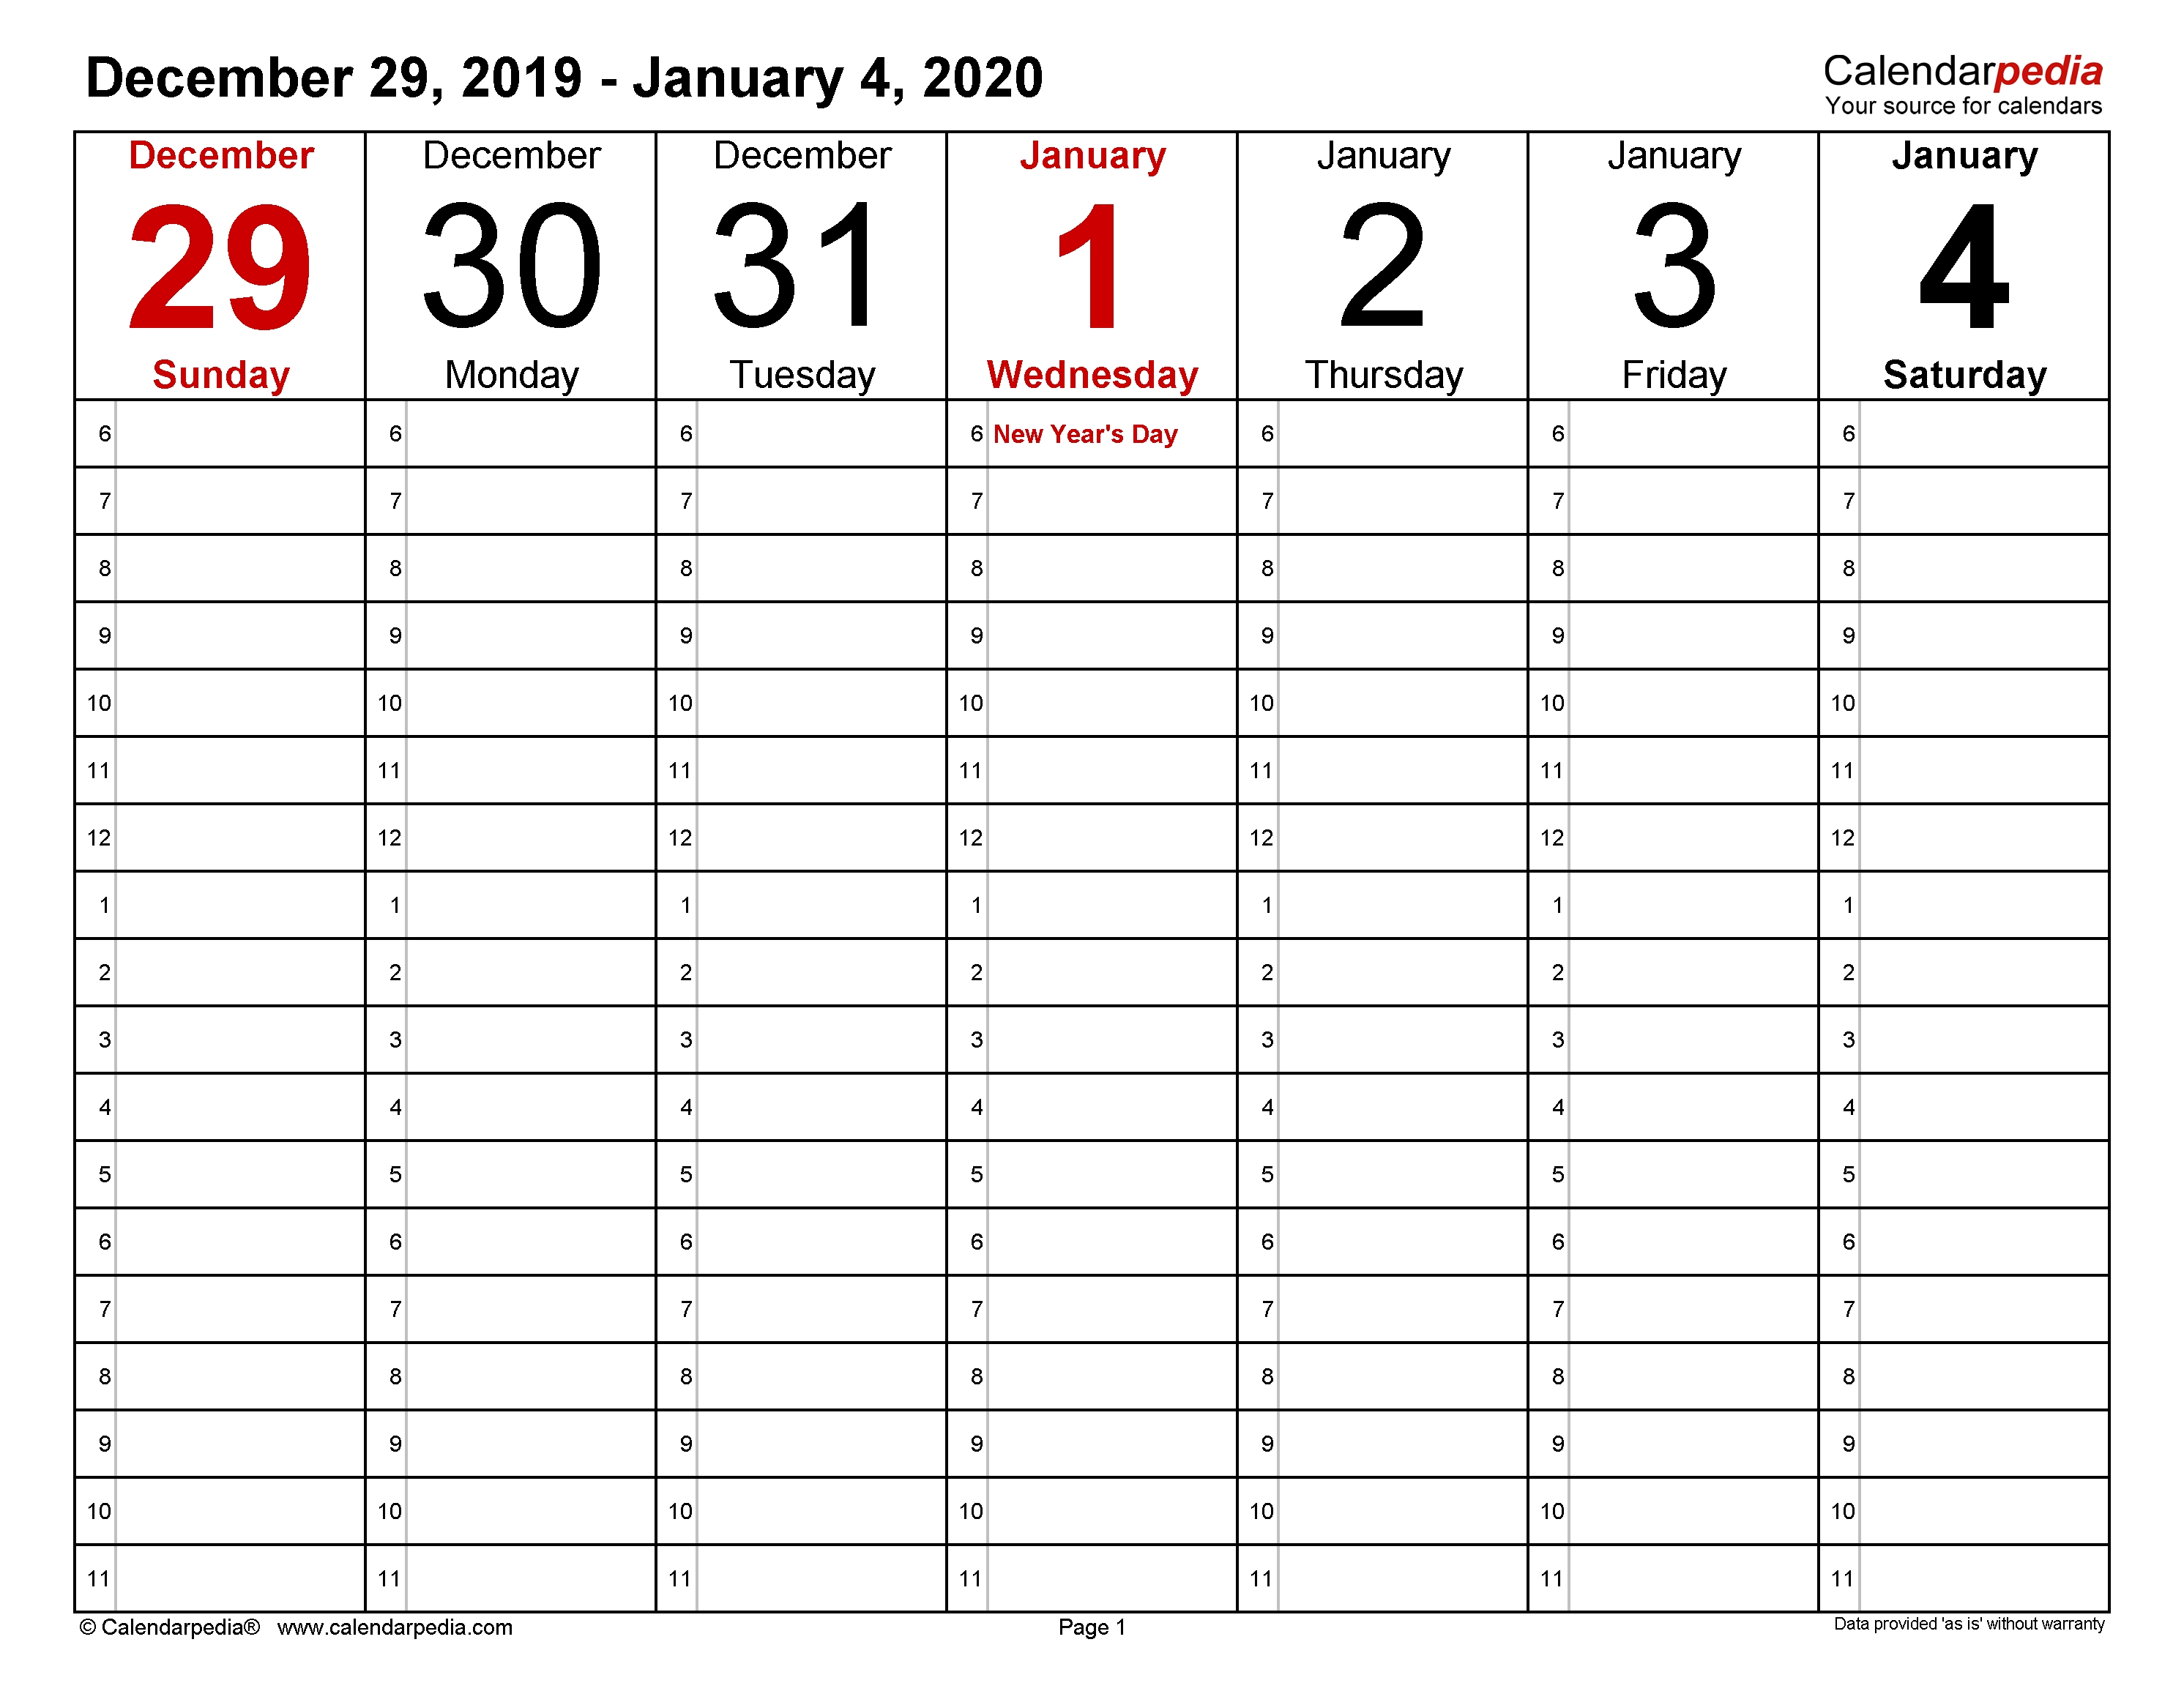 Weekly Calendars 2020 For Word - 12 Free Printable Templates-2020 Calendar Templates Monday - Friday